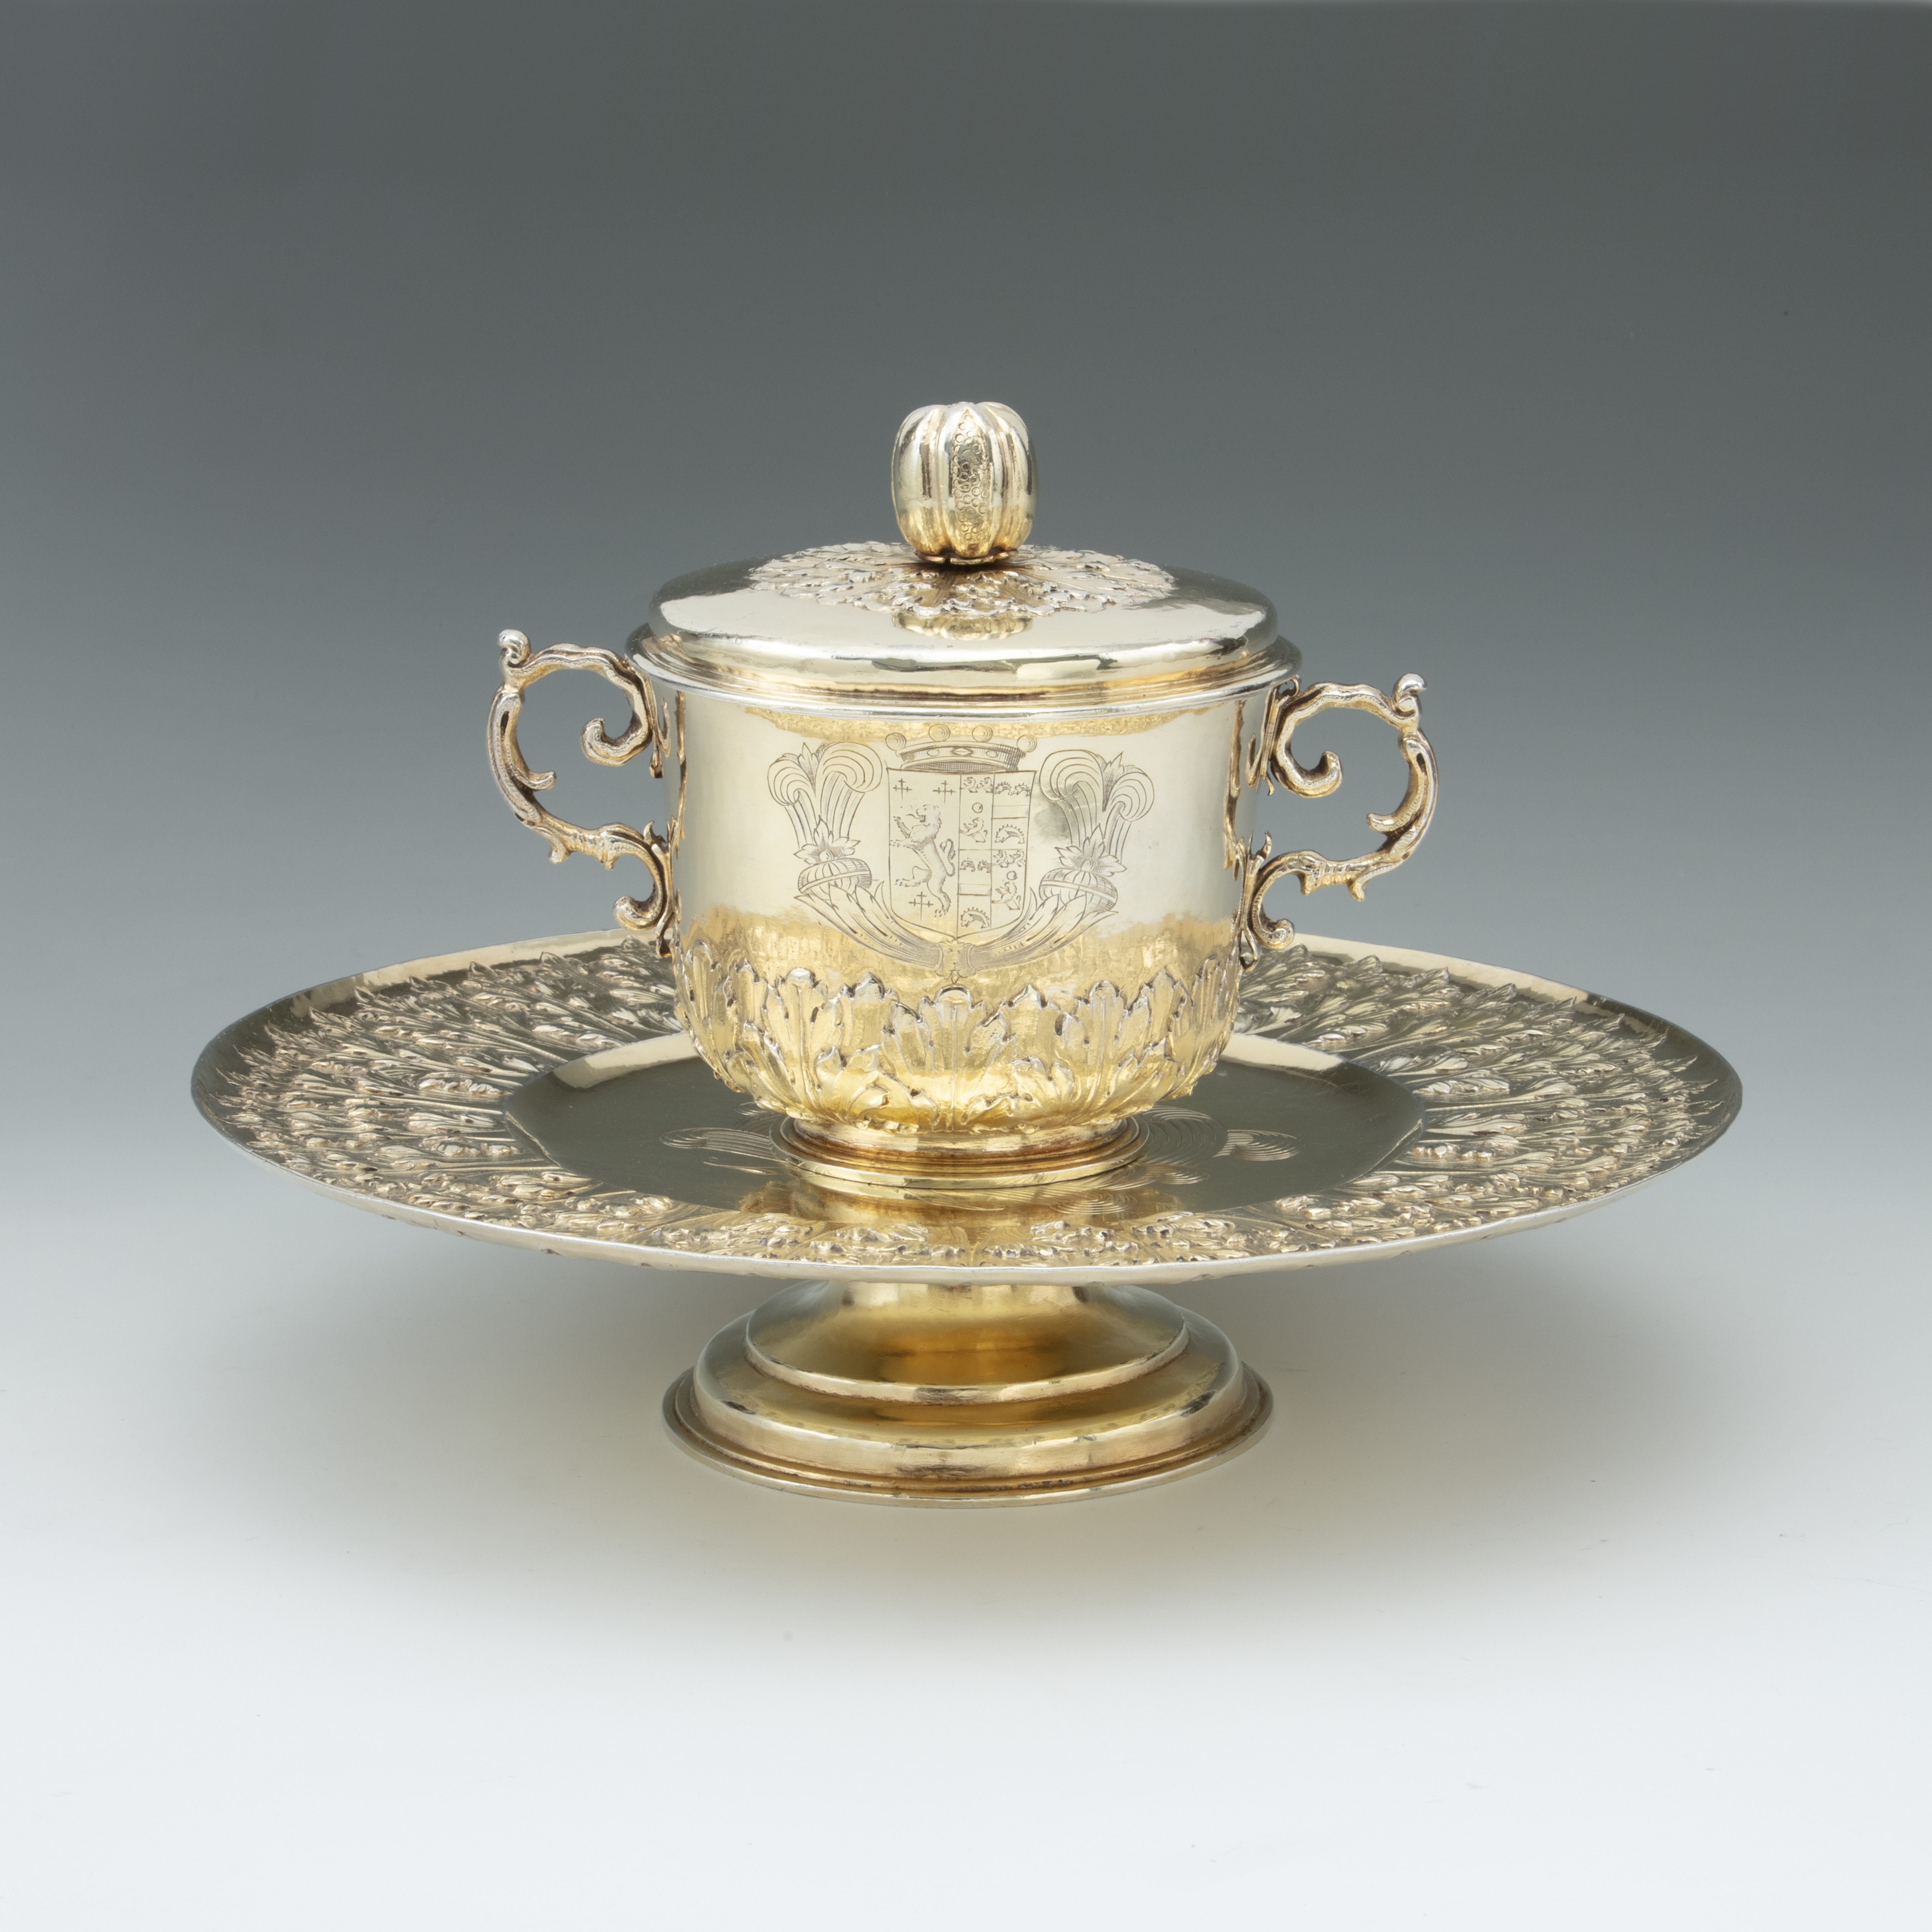 A Charles II Silver-Gilt Porringer on Stand